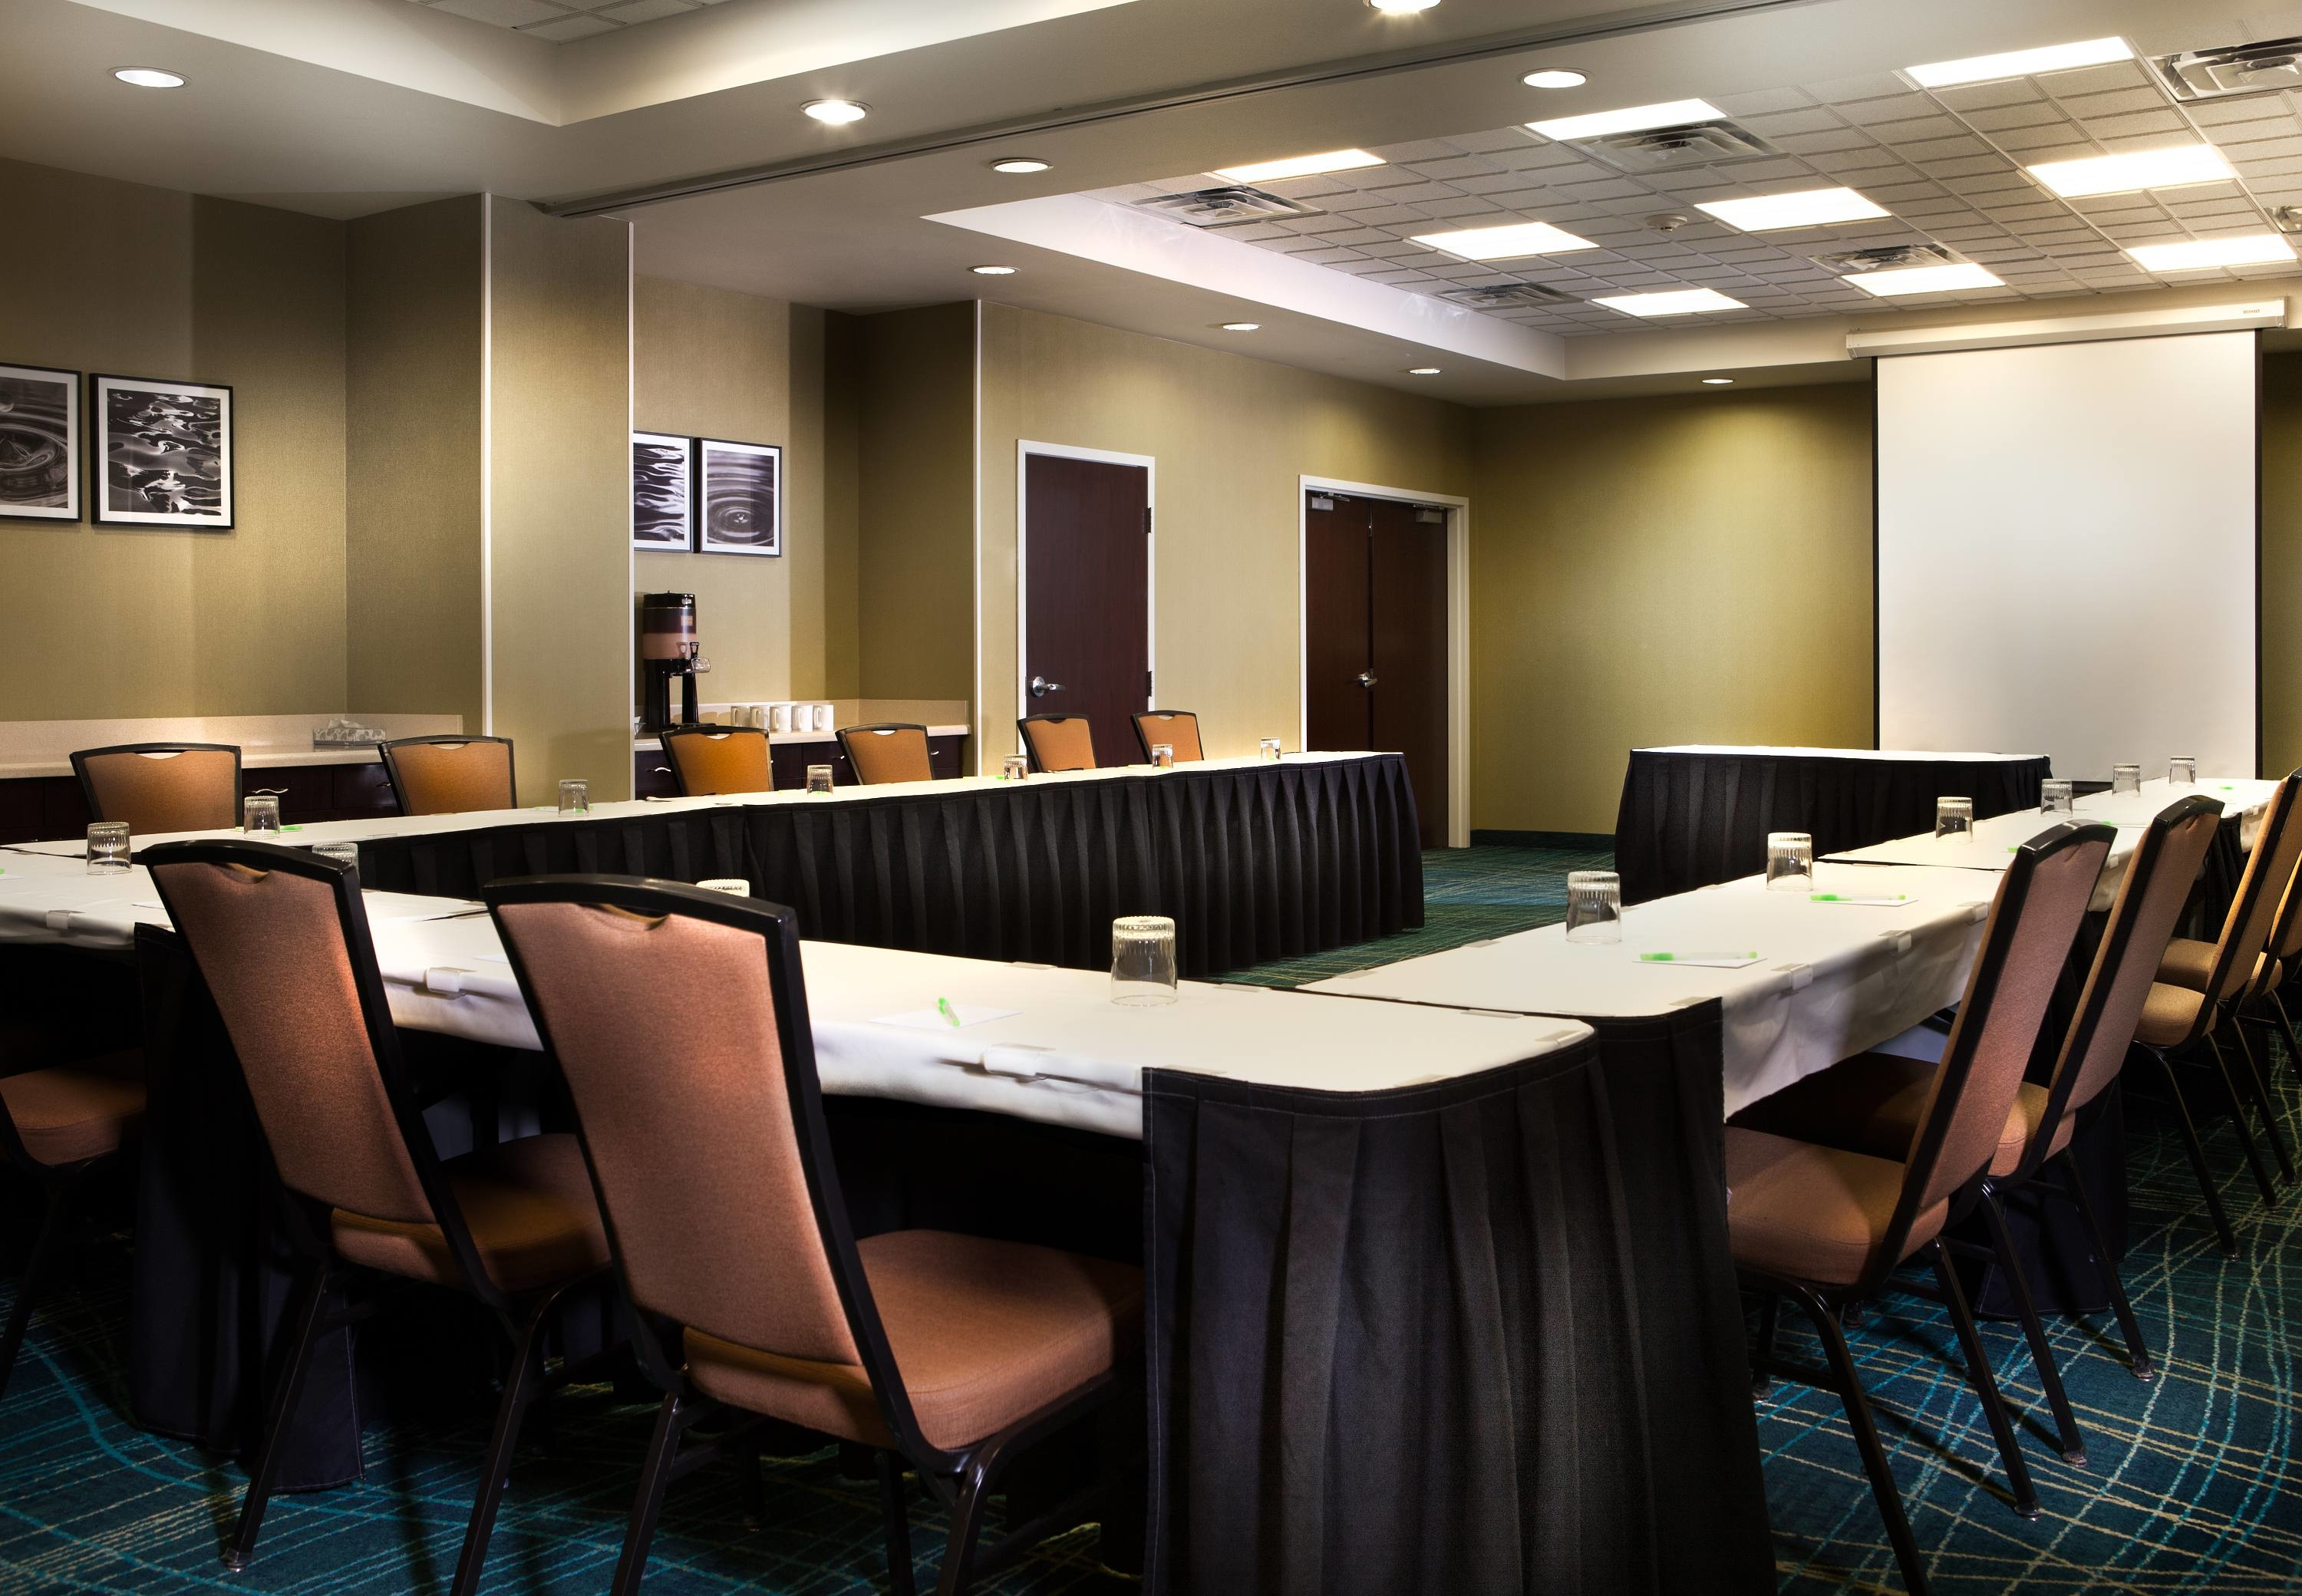 SpringHill Suites by Marriott Dallas DFW Airport North/Grapevine image 0